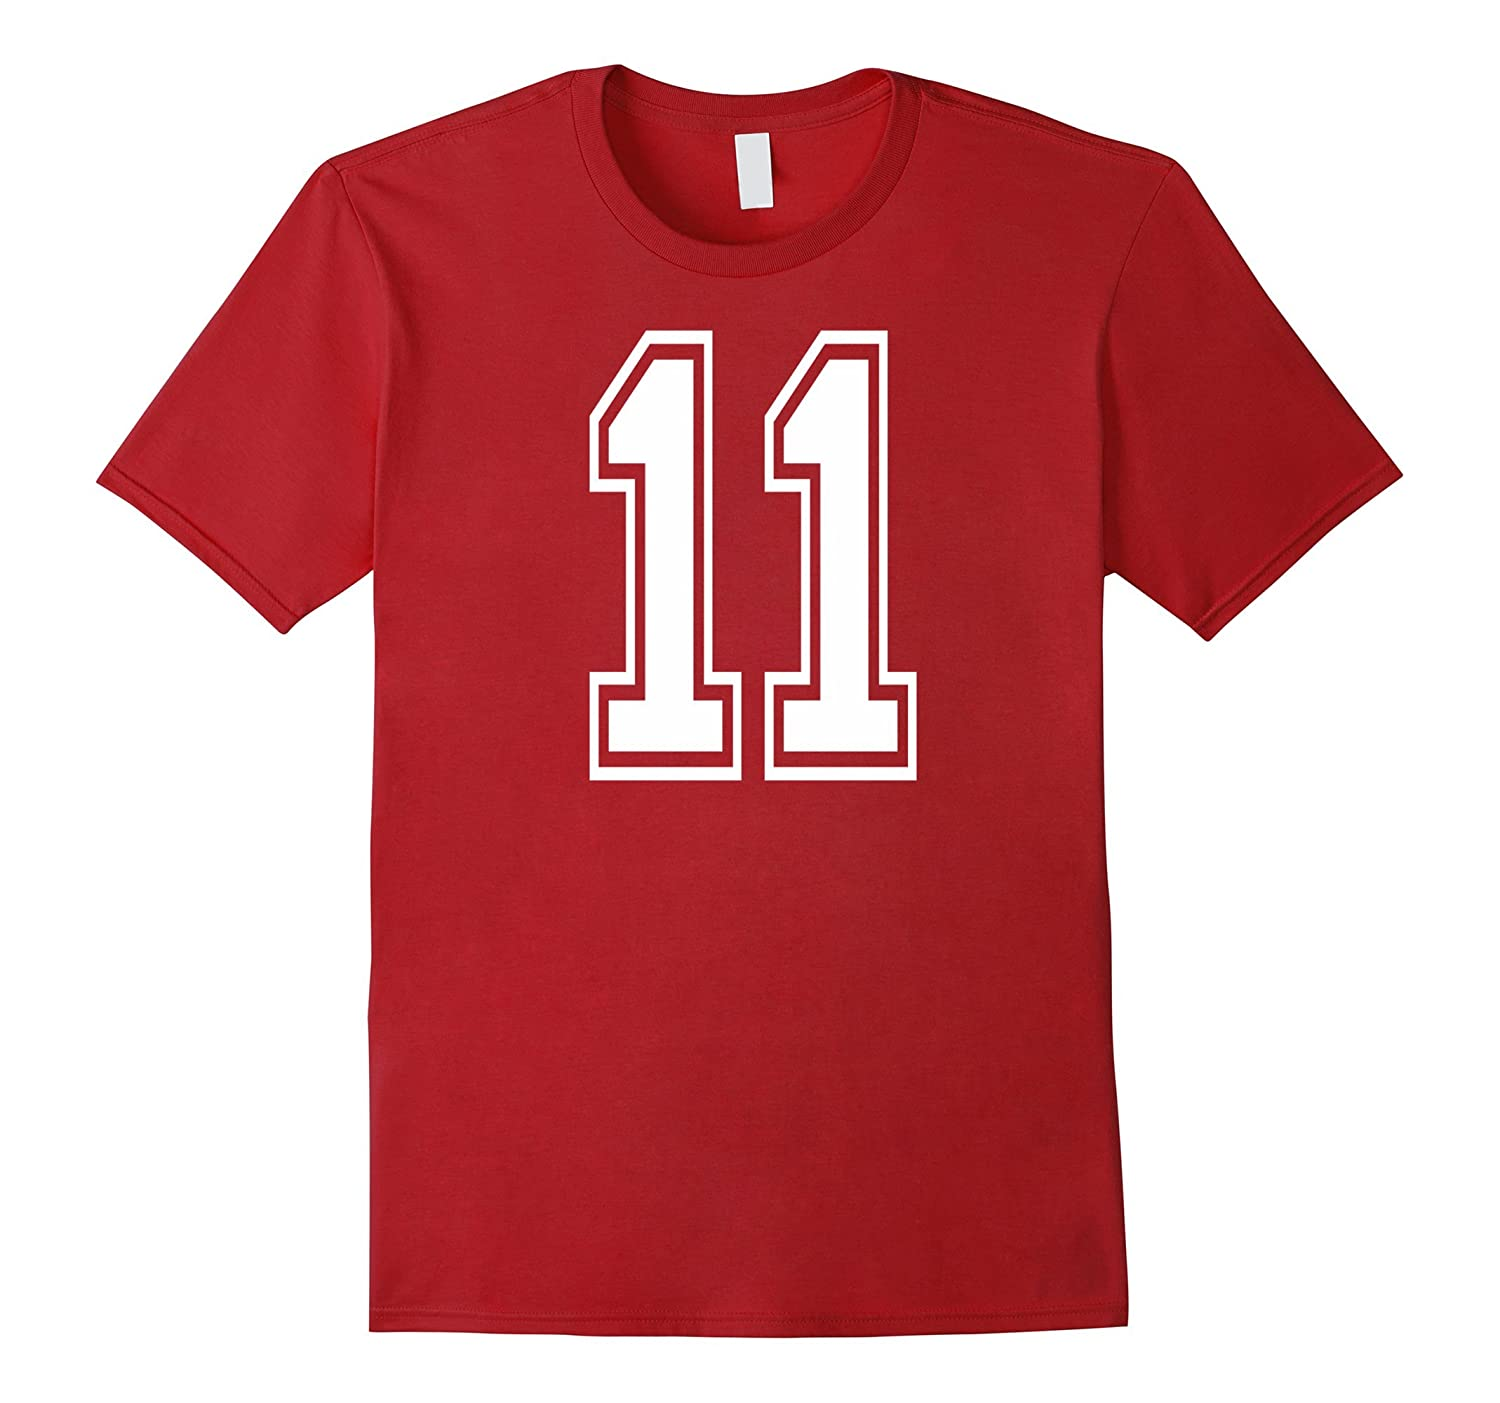 #11 Numbered College Sports Team T-Shirts white front & back-T-Shirt